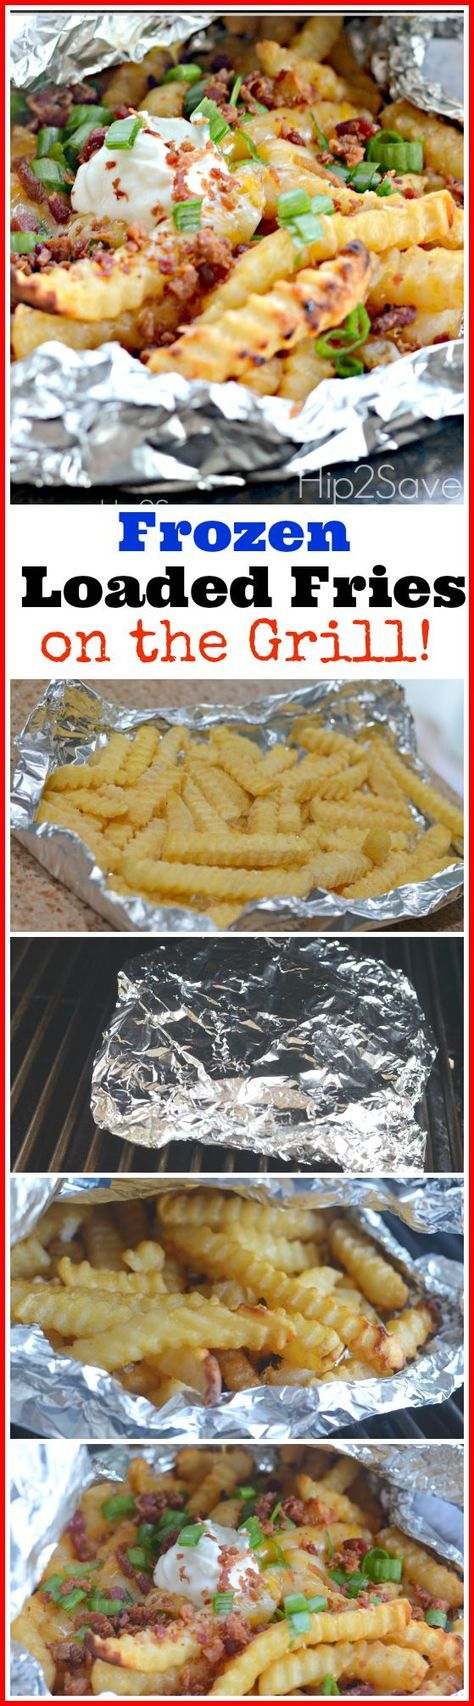 how to grill frozen fish in foil